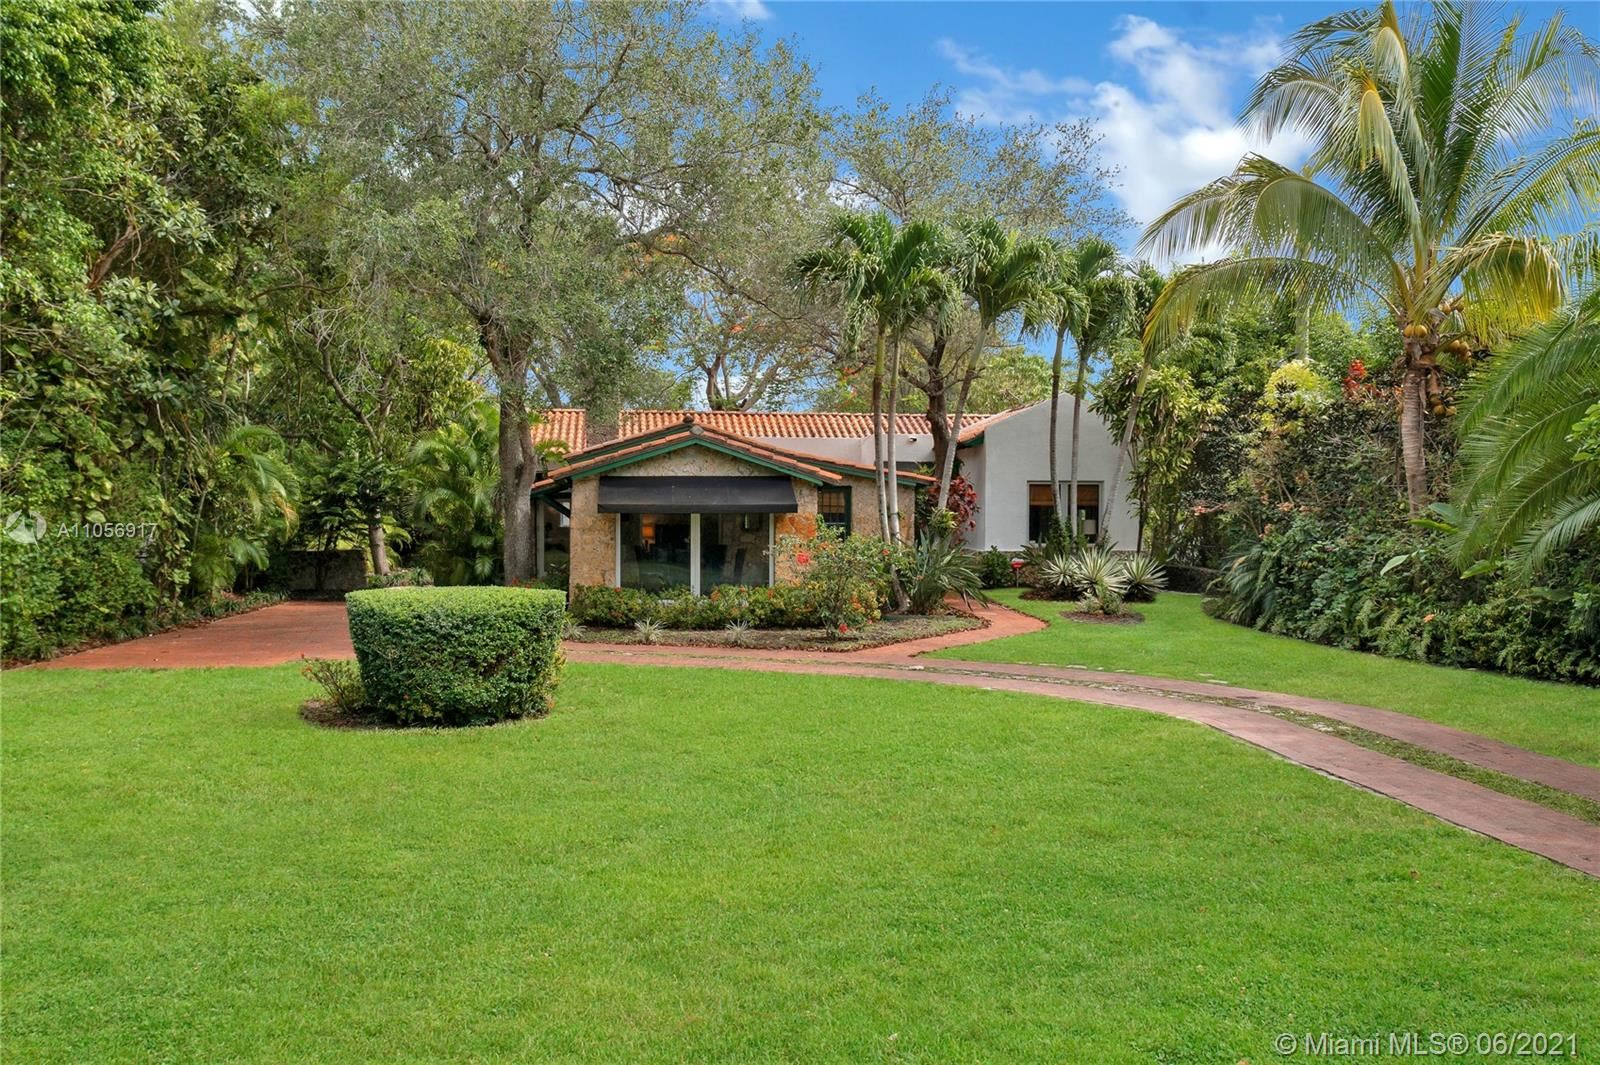 Photo of 6811 Sunset Dr, South Miami, FL 33143 (MLS # A11056917)